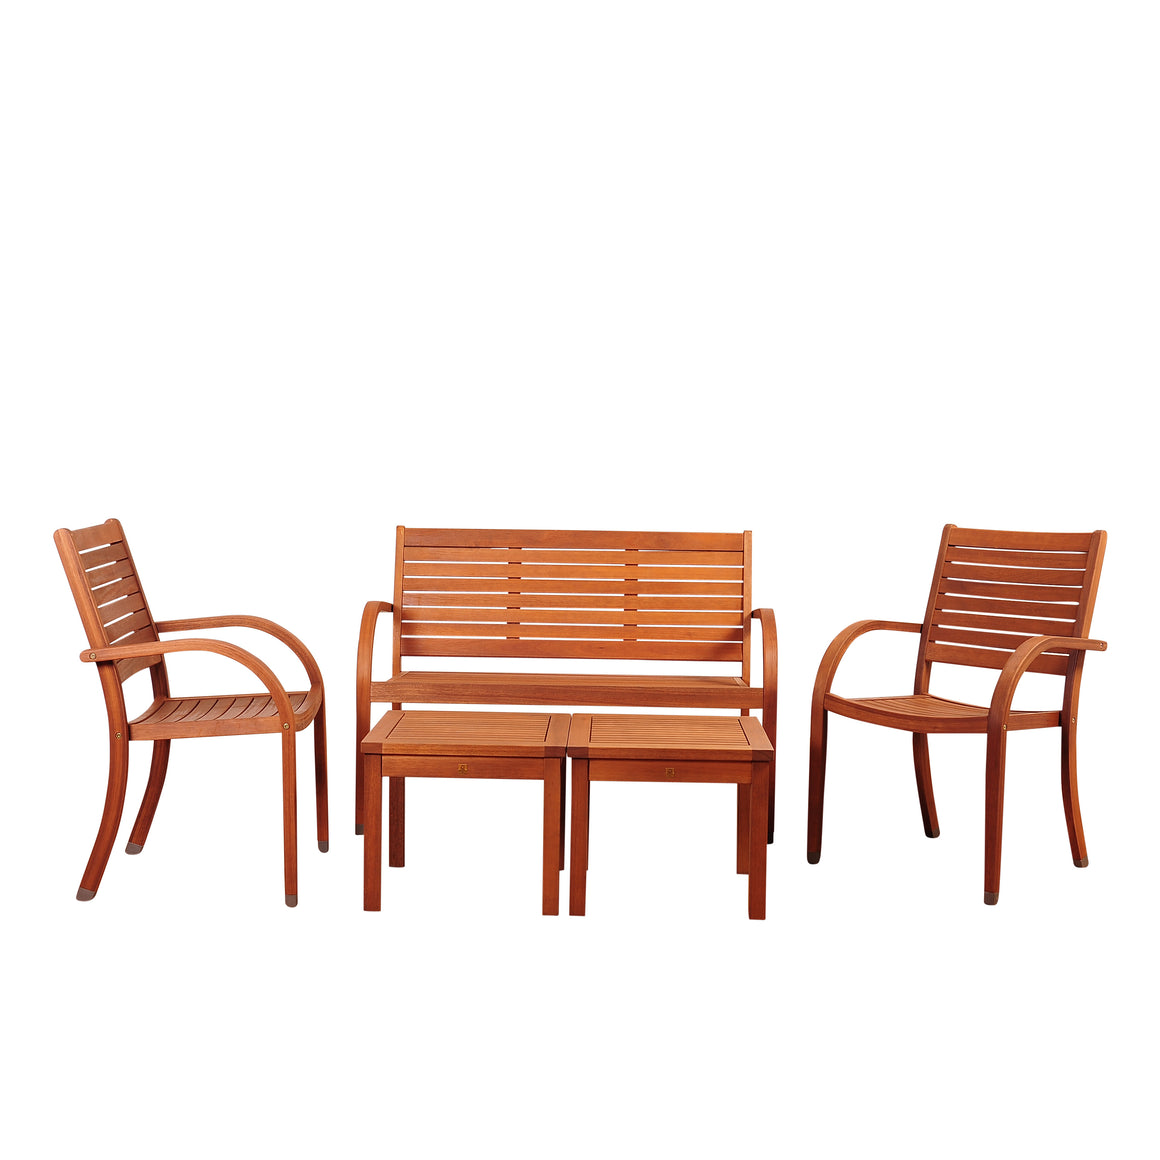 Amazonia Arizona 5 Piece Eucalyptus Seating Set , International Home Miami- grayburd